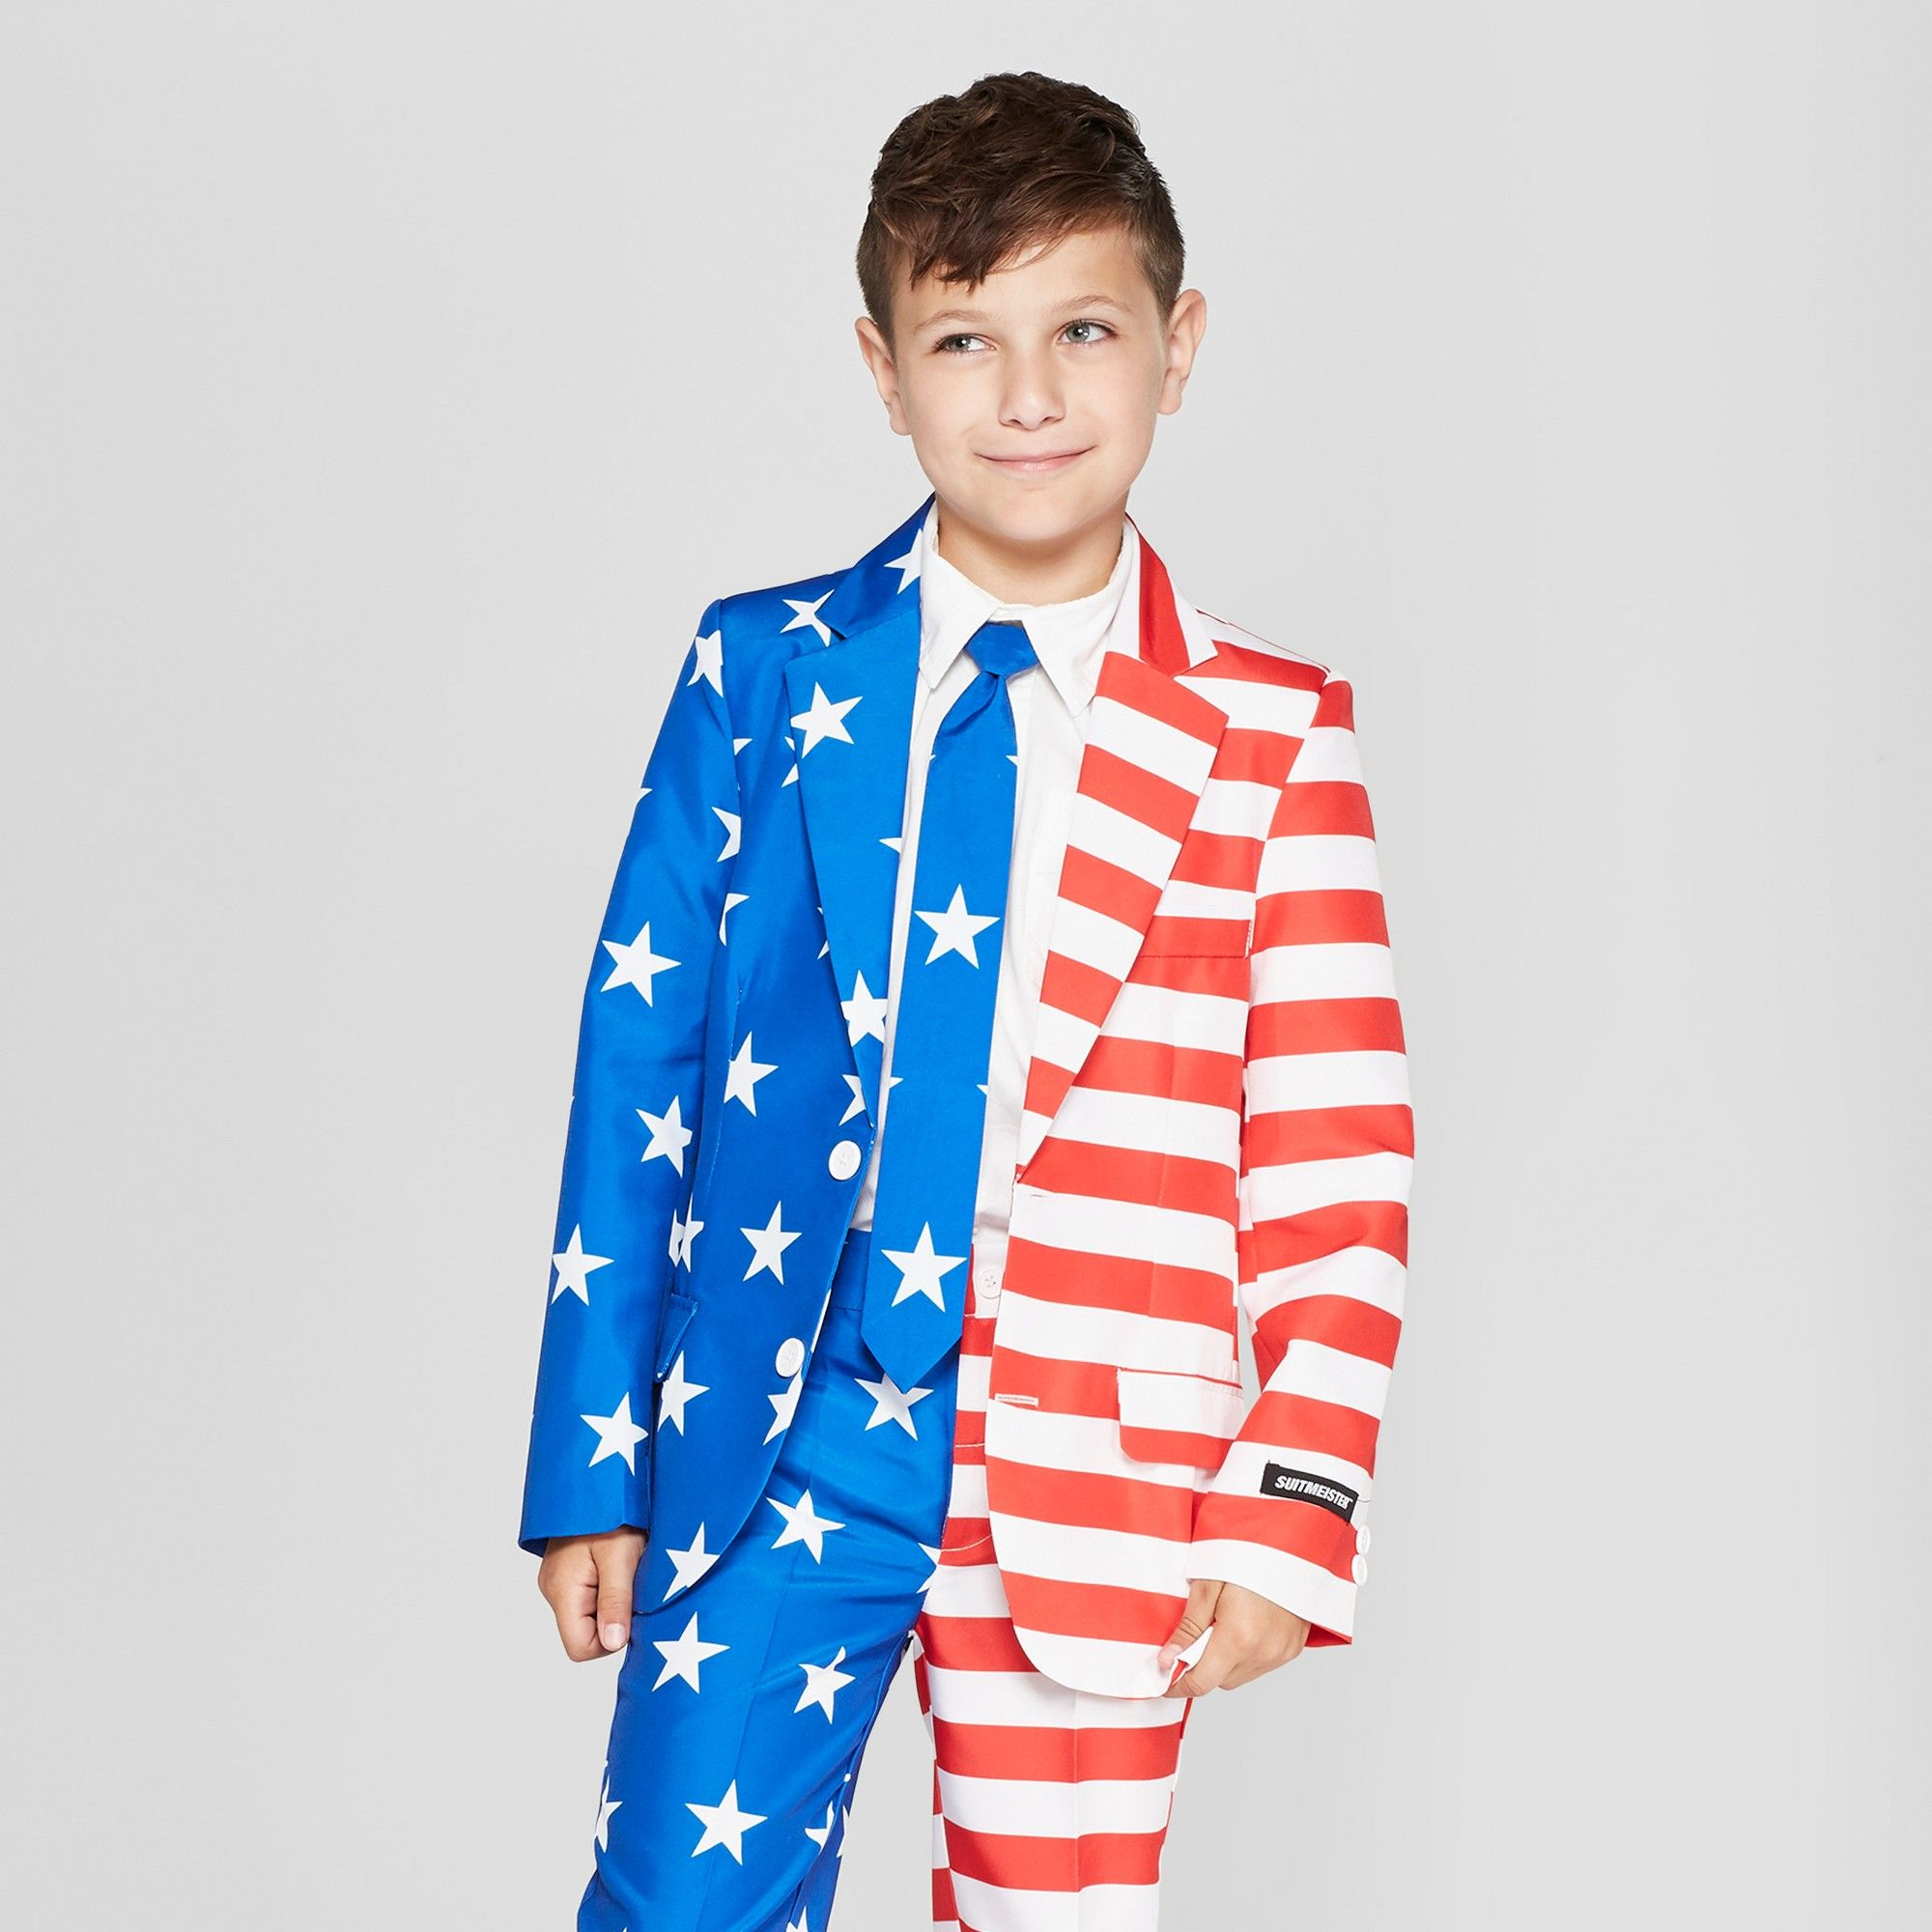 Suitmeister Boys American Flag Full Suit Jacket Xl Multicolored Boys Puffer Jacket All Weather Jackets Clothes